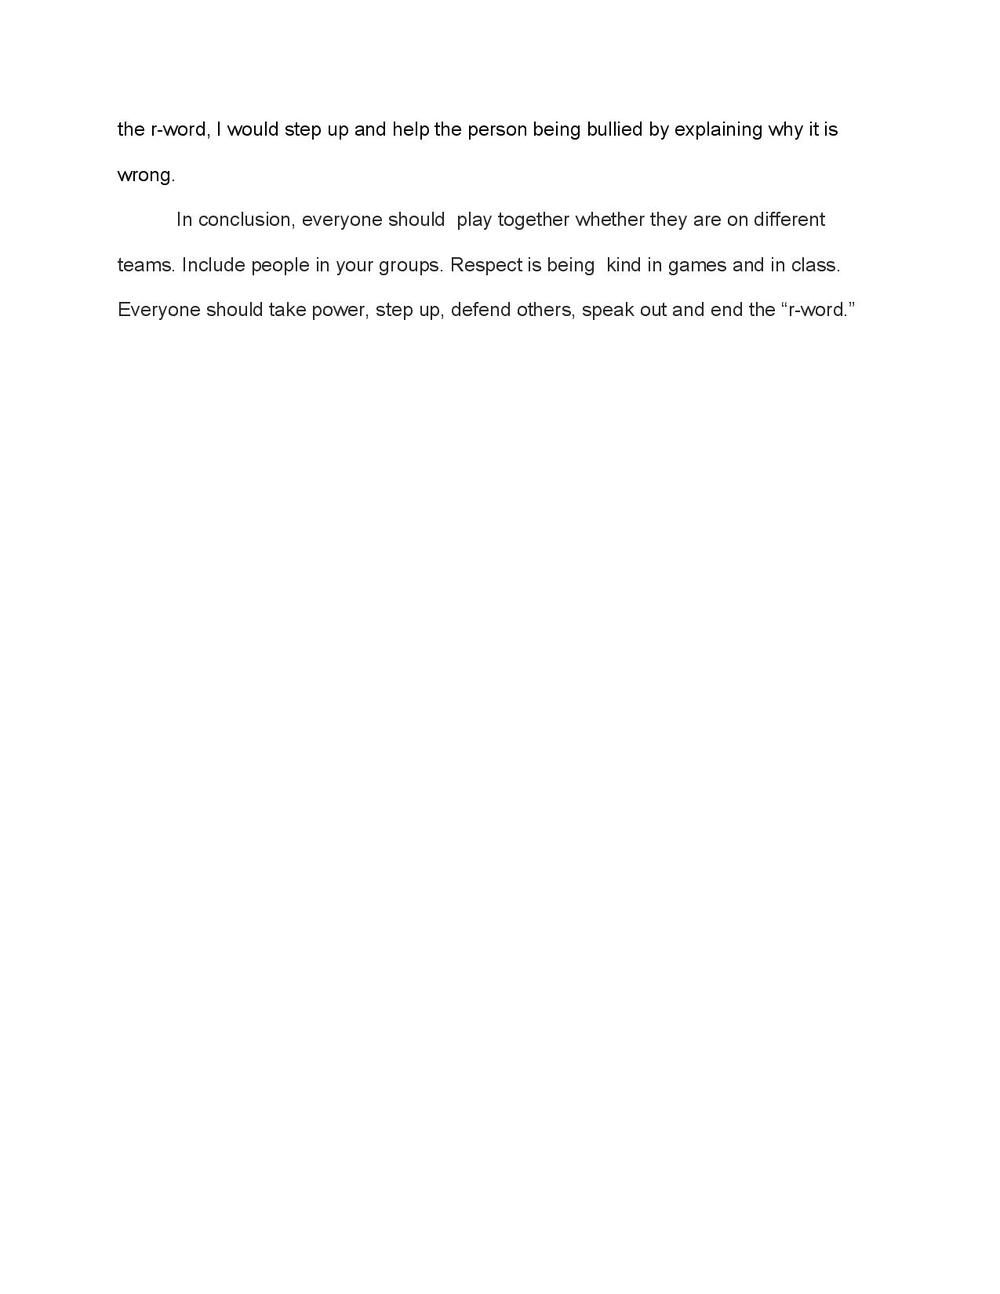 r-word respect-page-002.jpg